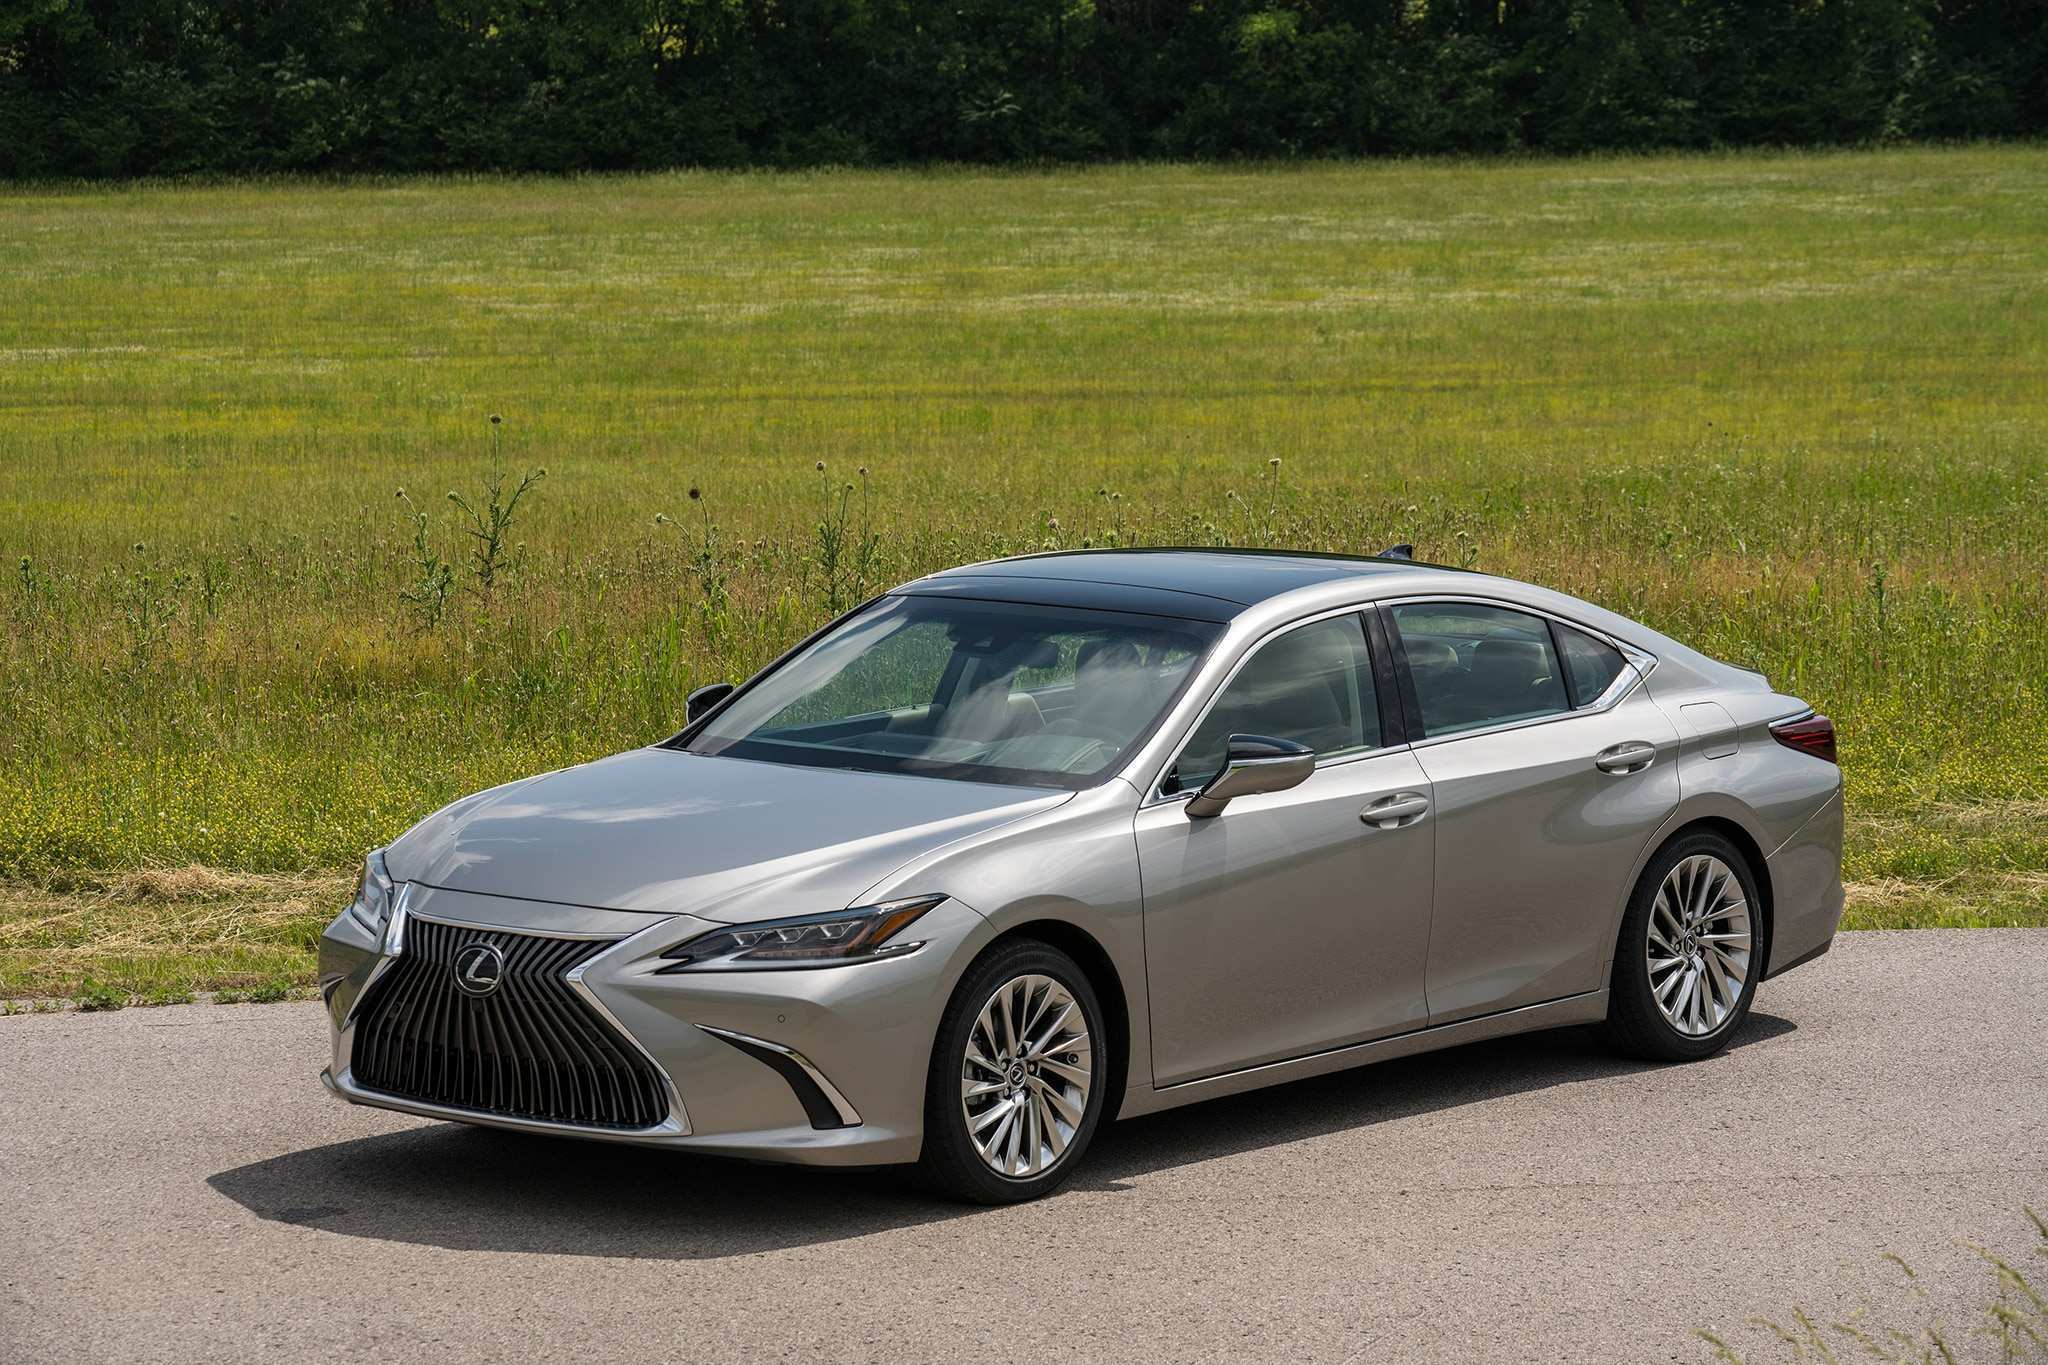 93 A Es 350 Lexus 2019 Pricing